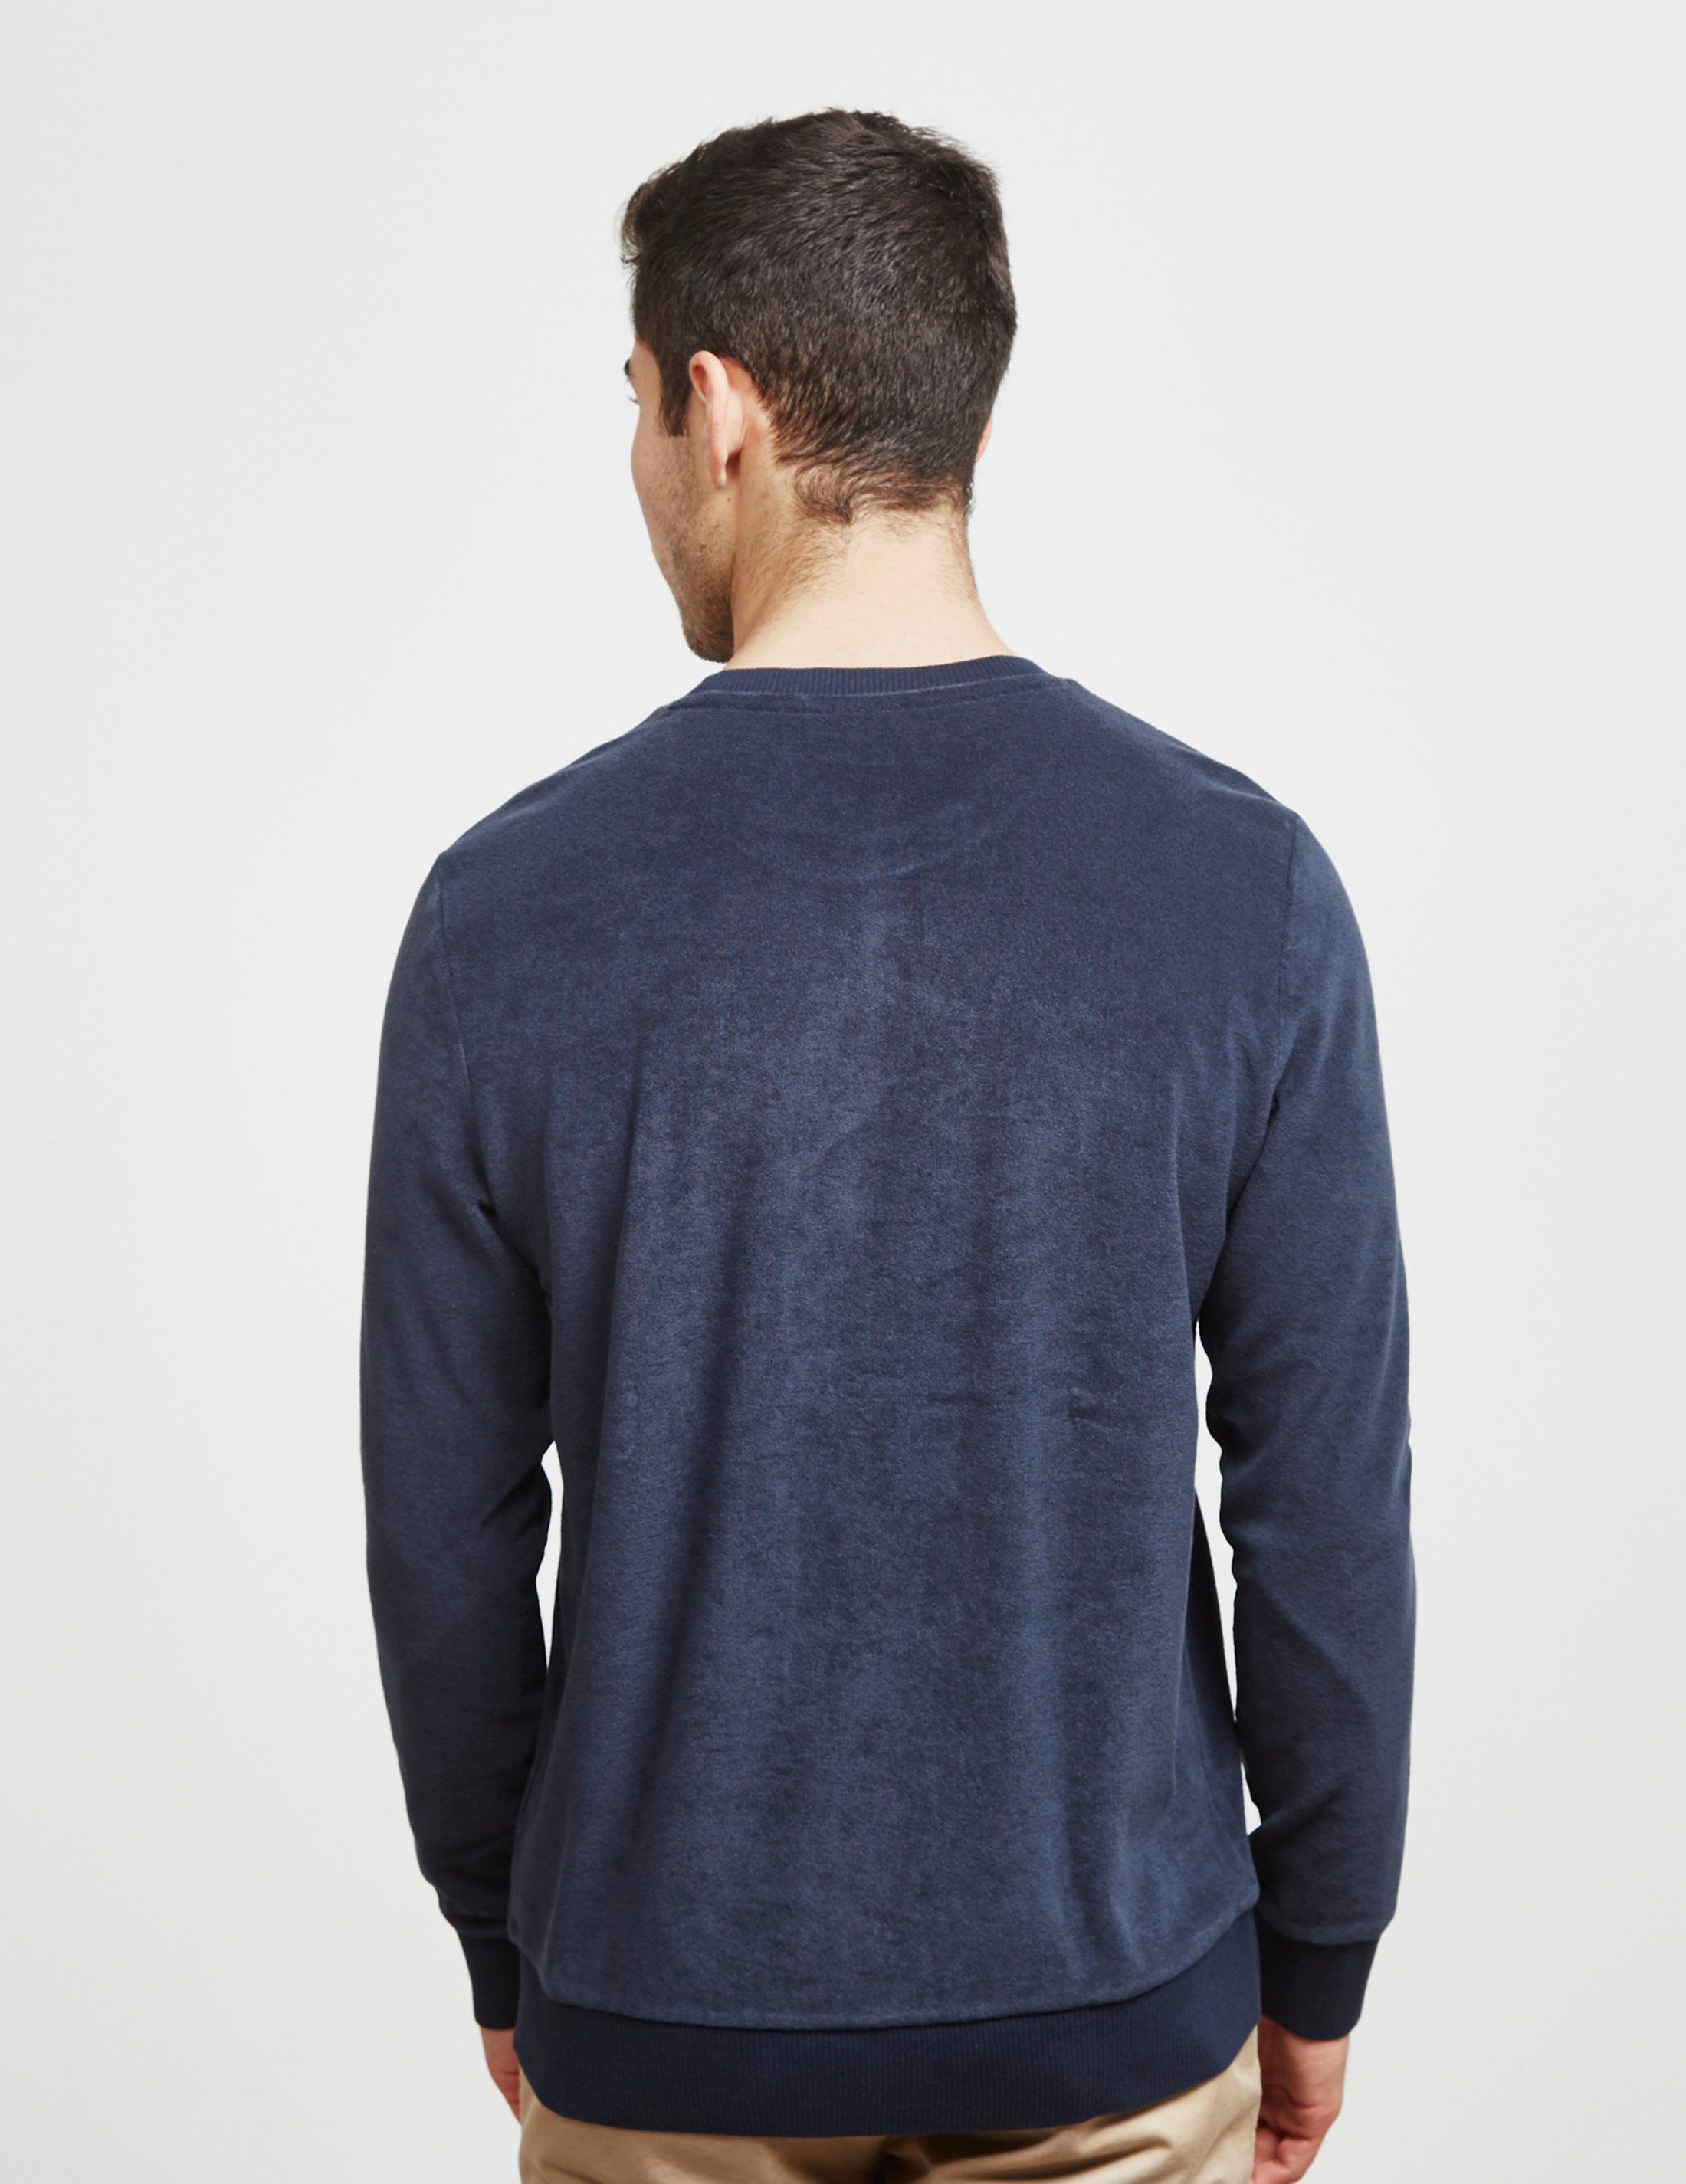 BOSS Tovell Towelling Sweatshirt